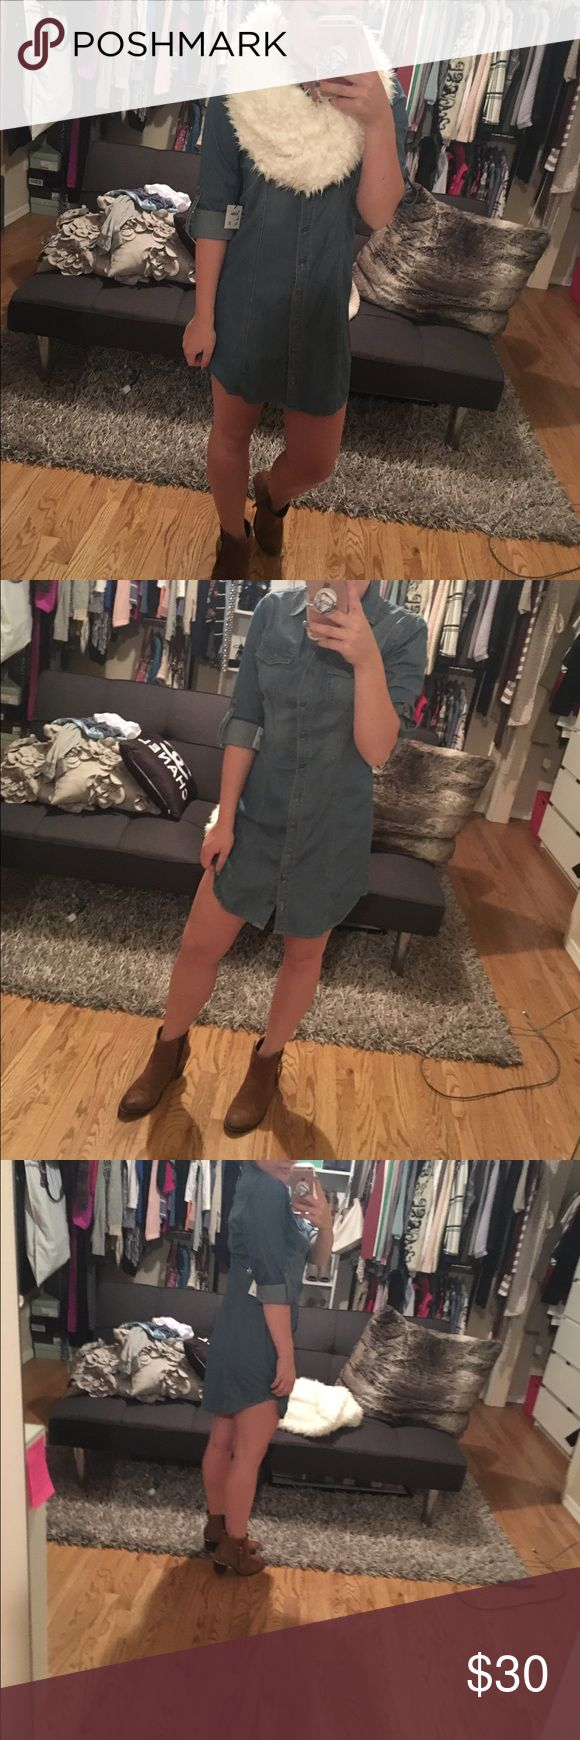 Nordstrom jean dress Have never worn it it still has its tags on the dress! Very stylish paired with a scarf and boots or a stylish belt! Nordstrom Dresses Mini